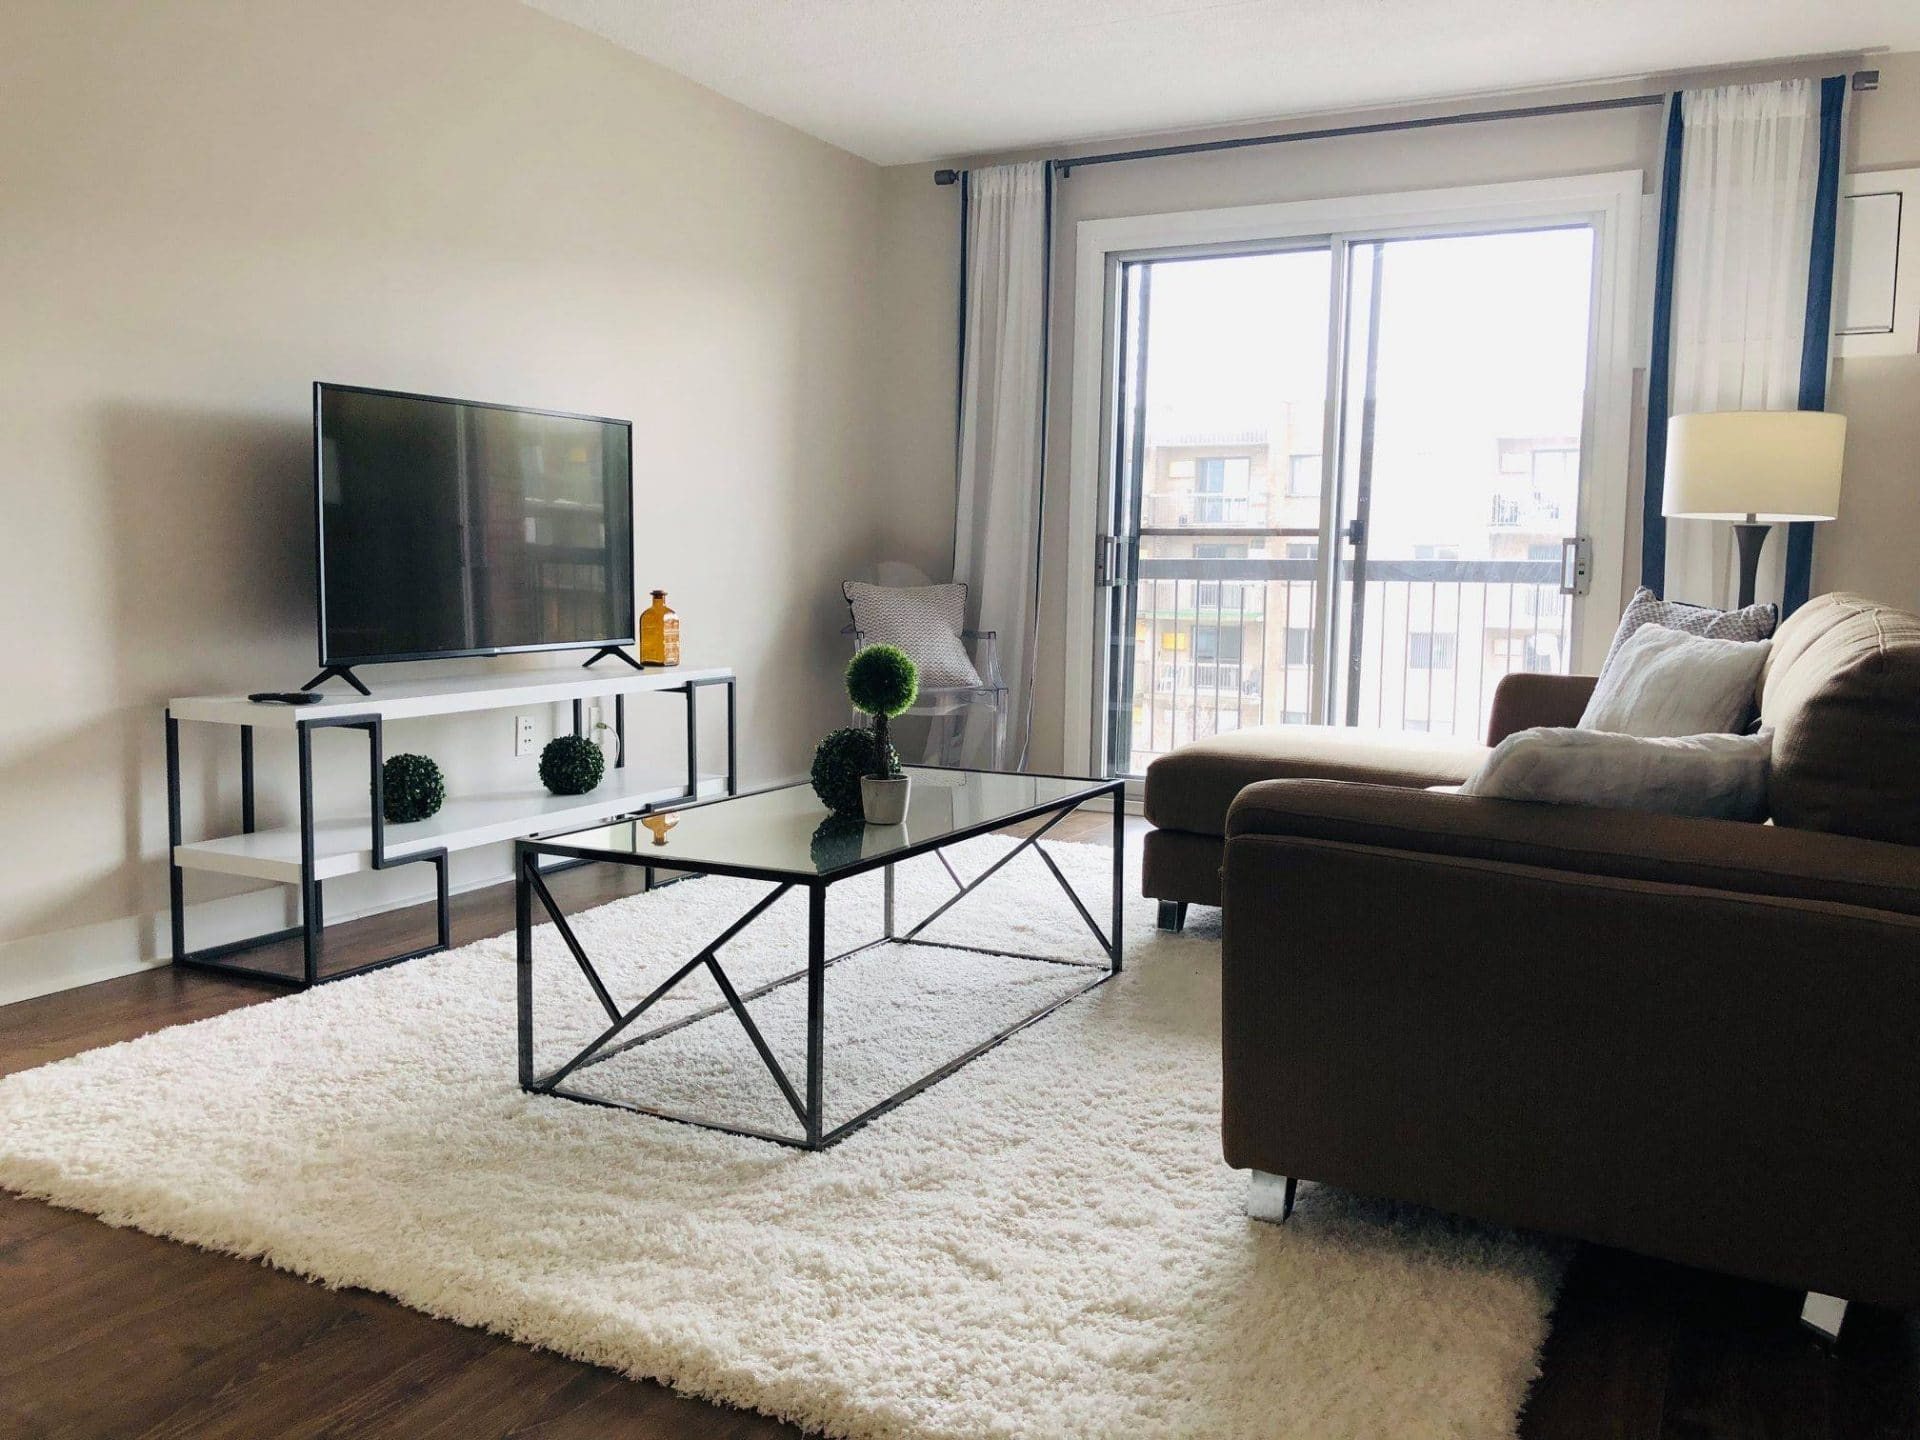 Residence Vanier - Appartement pour personnes agees - 003